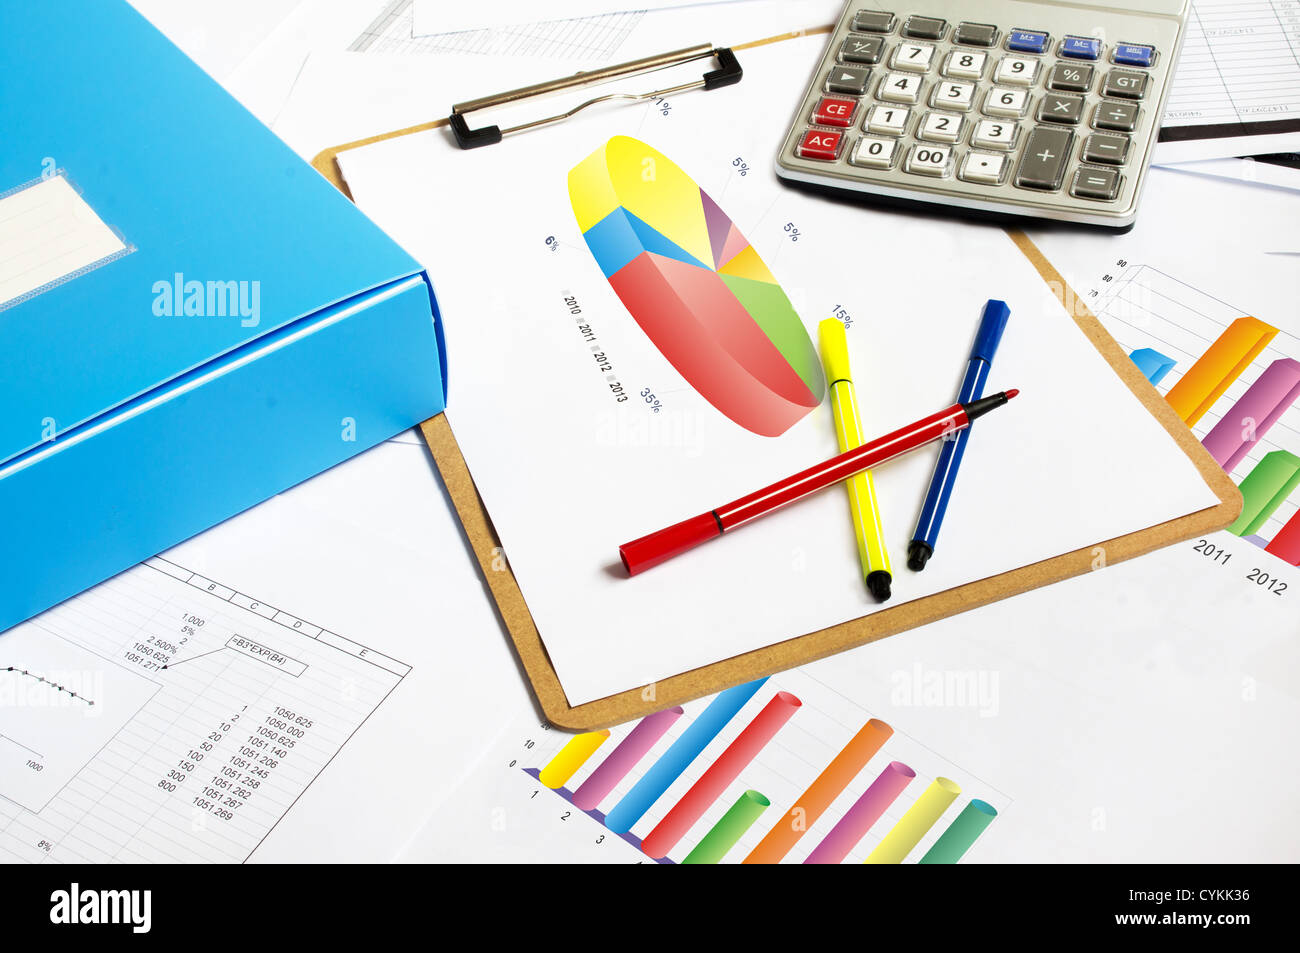 Financial paper charts and graphs on the table stock photo 51448522 financial paper charts and graphs on the table ccuart Image collections